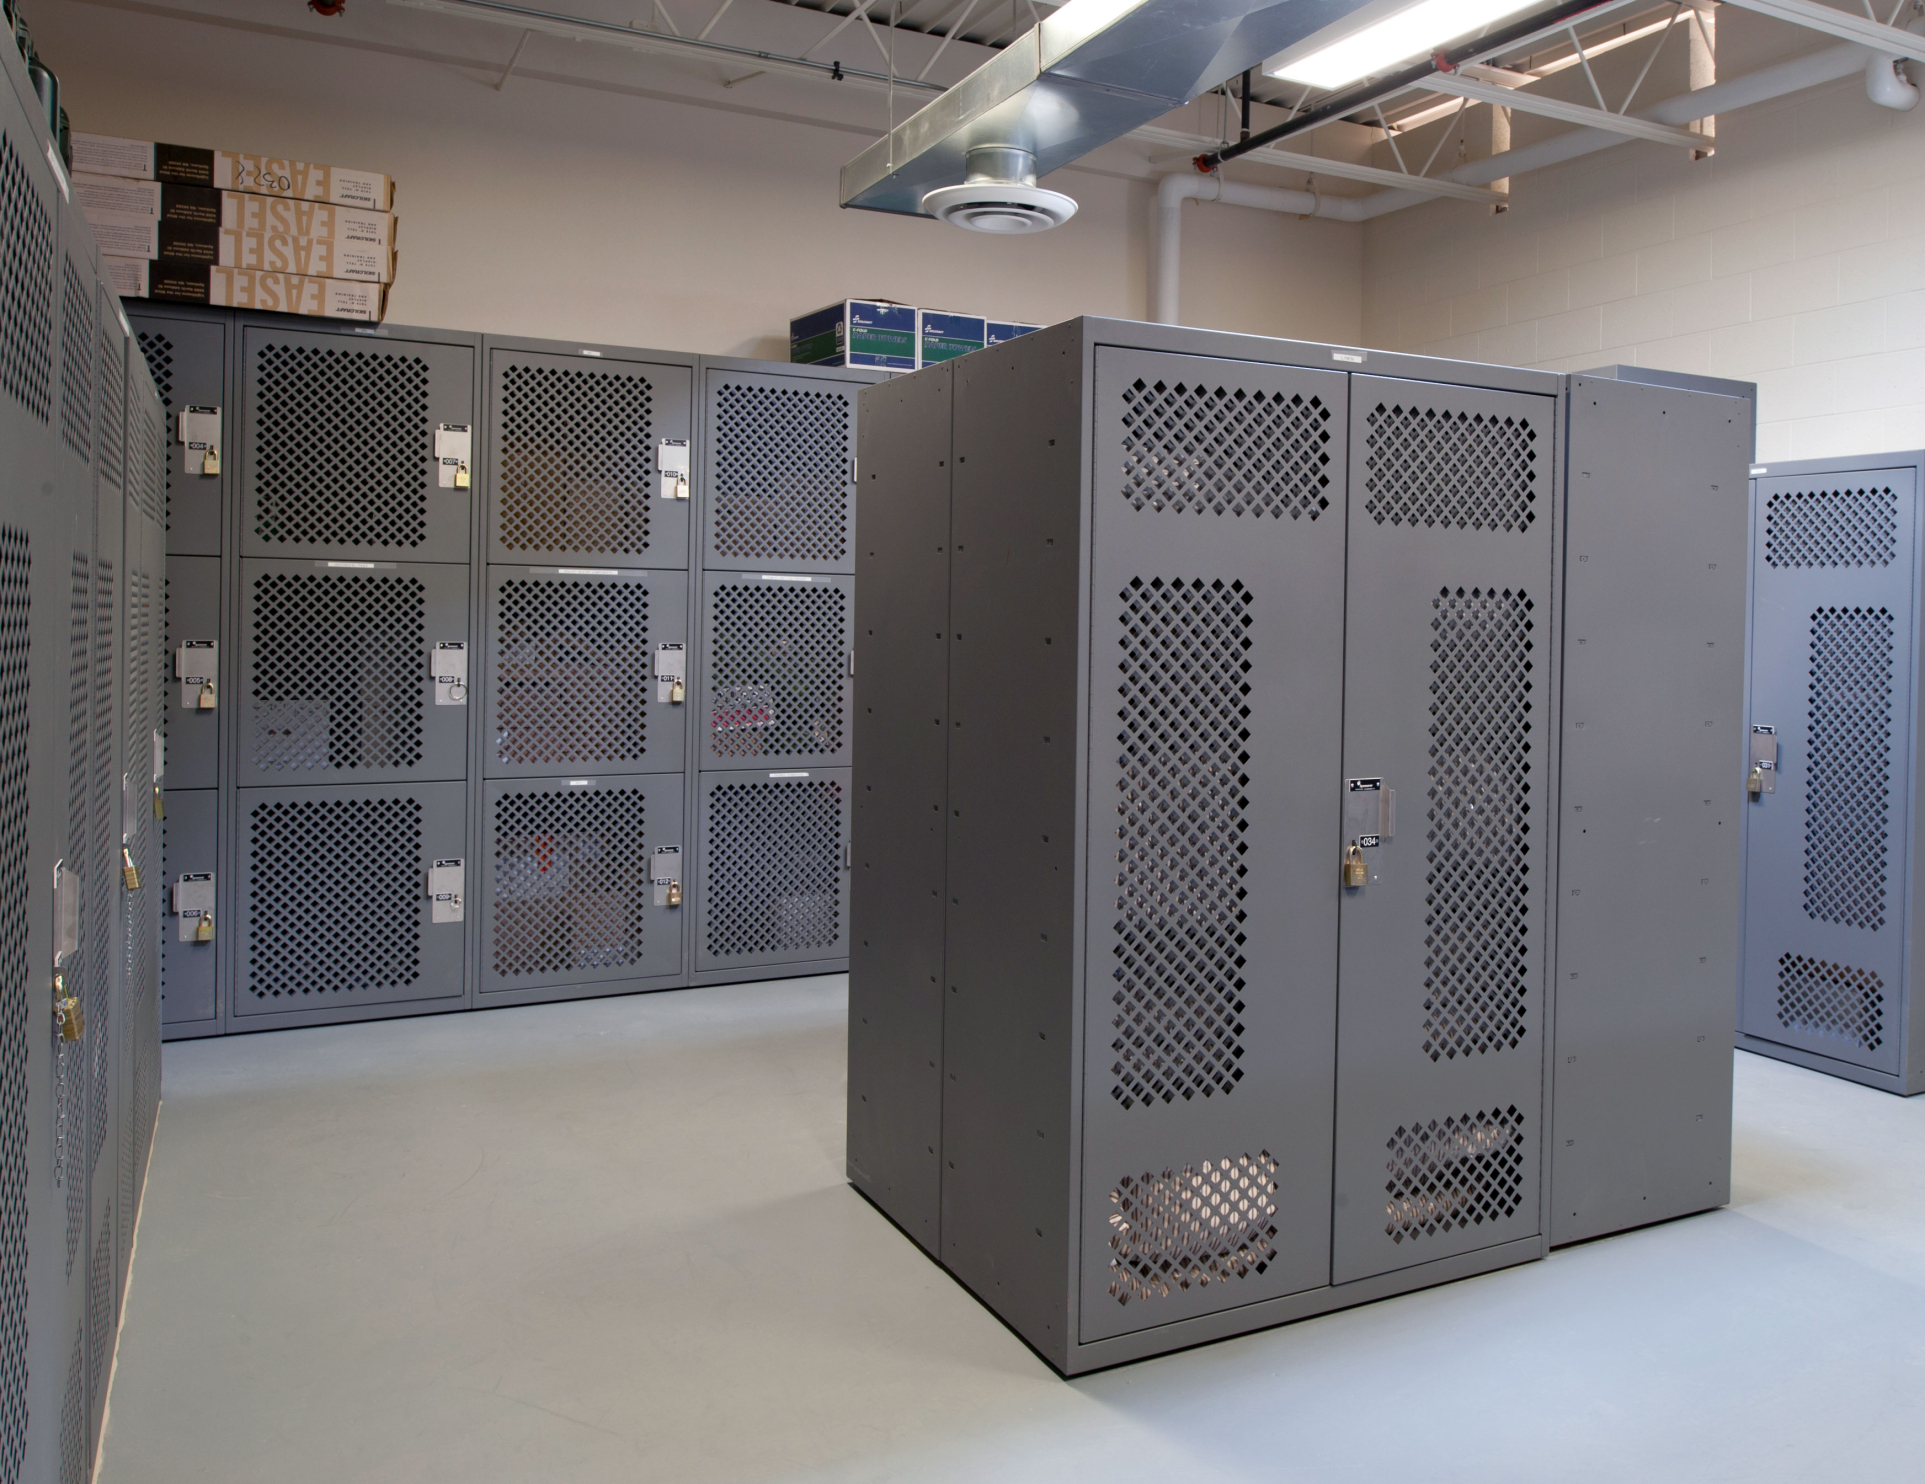 Secure Lockers for Military Gear Storage